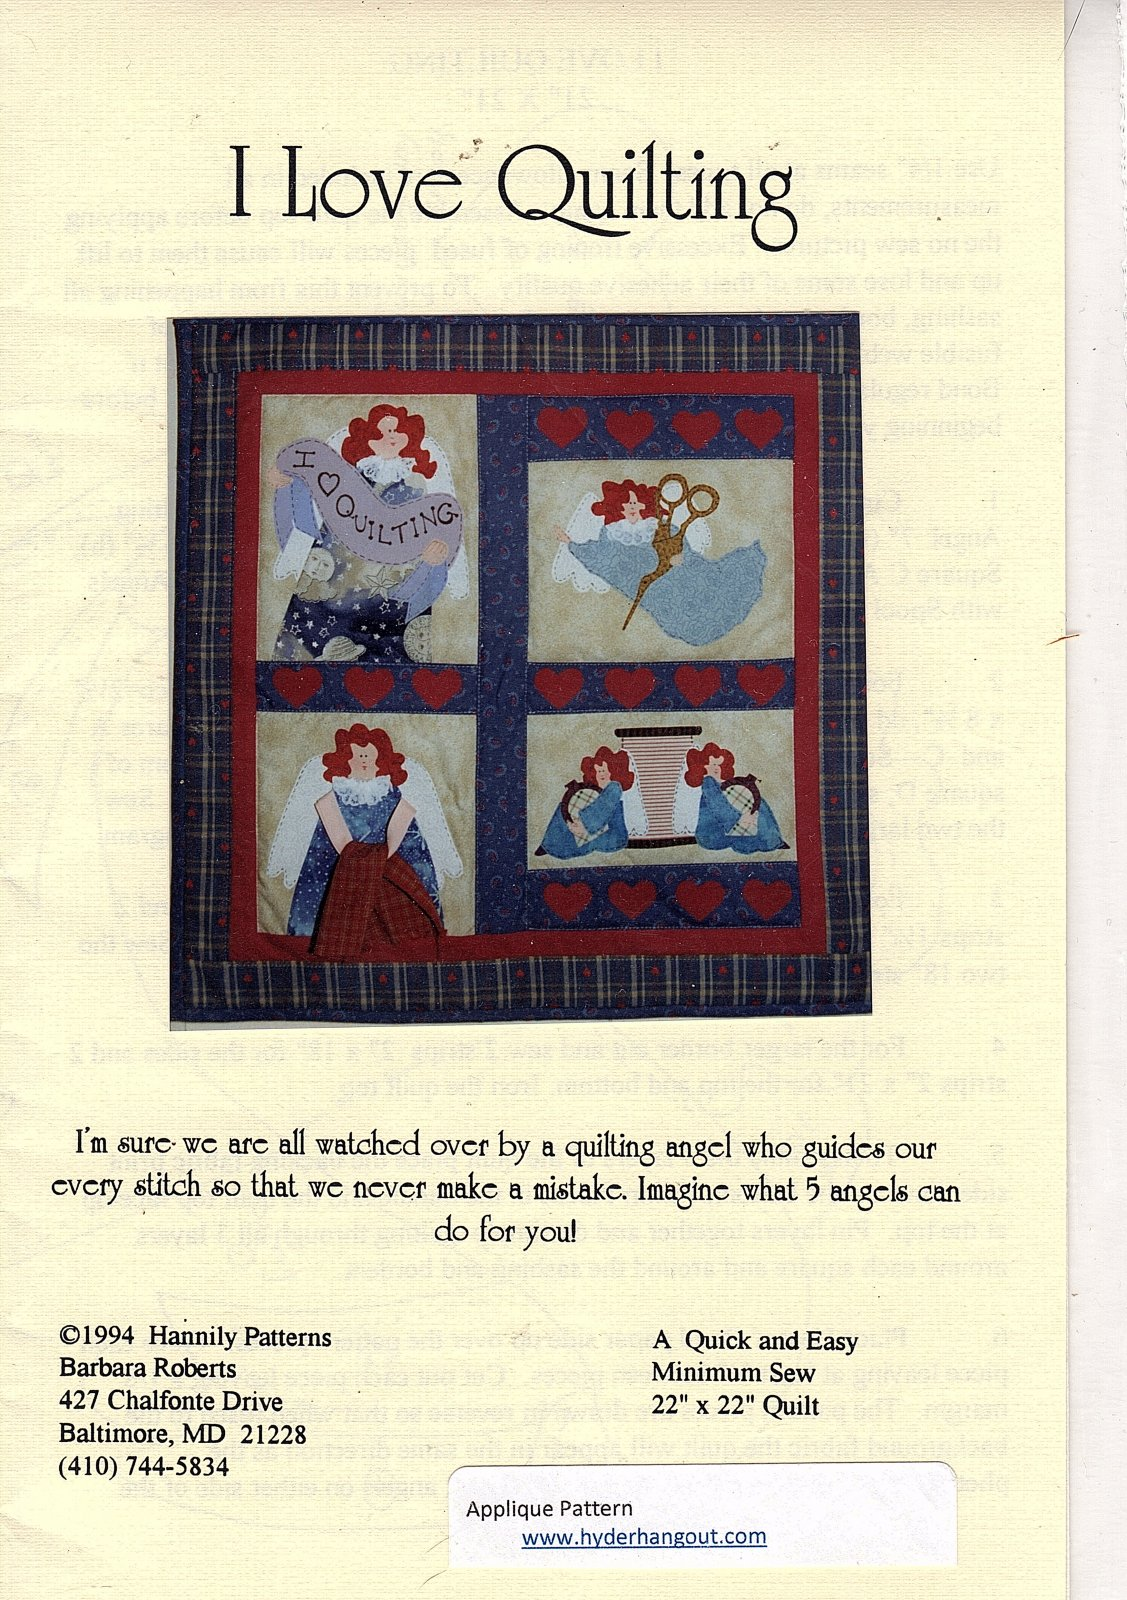 I Love Quilting by Hannily Patterns - A Quick & Easy Sew 22 x 22